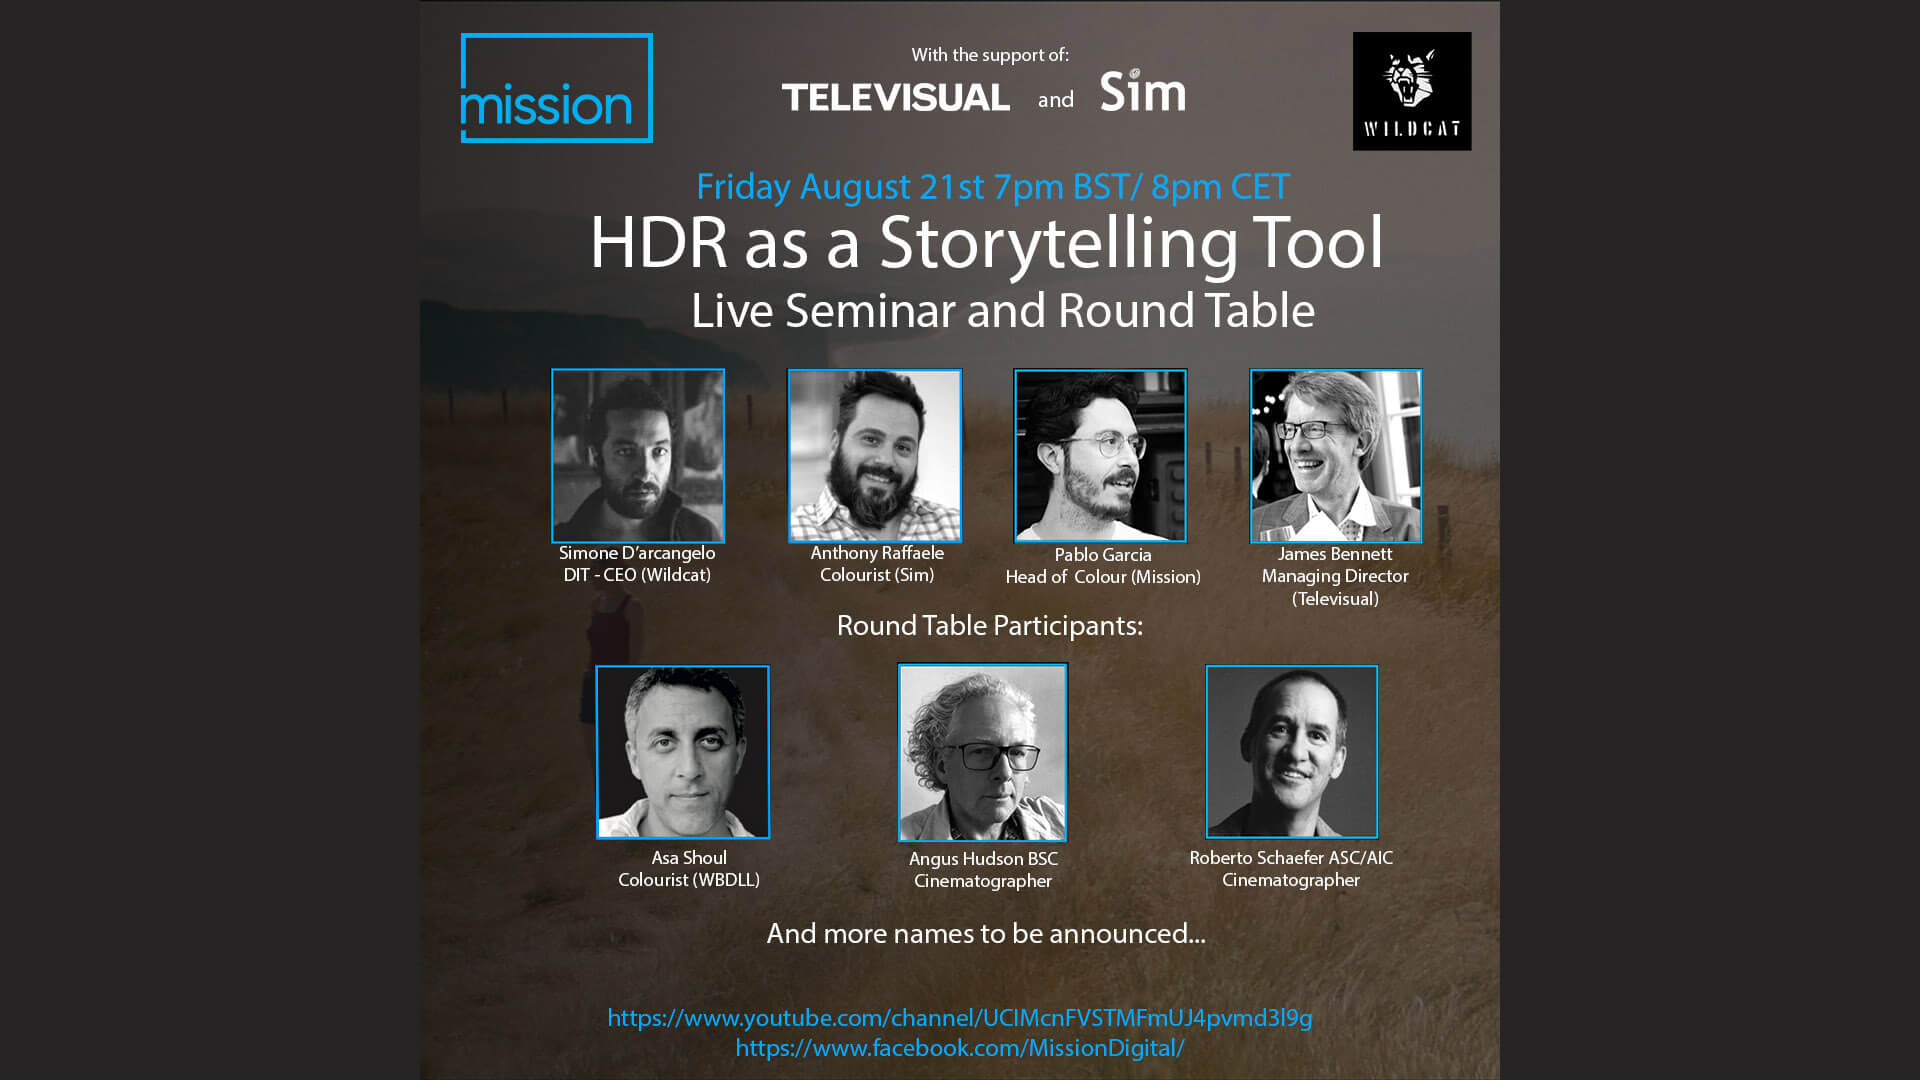 Live seminar Friday on HDR as a storytelling tool